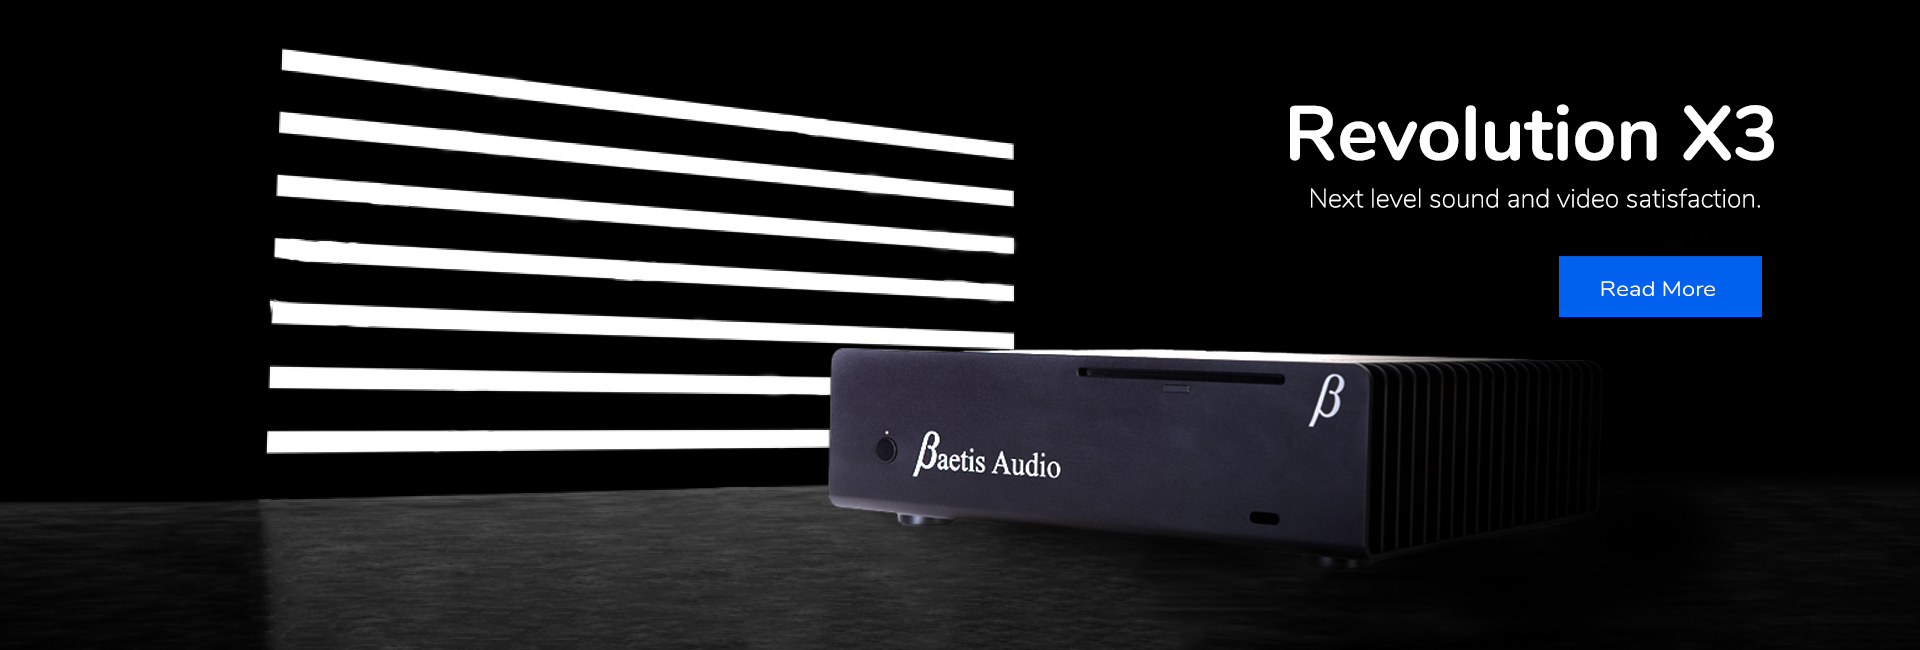 baetis audio revolution x3